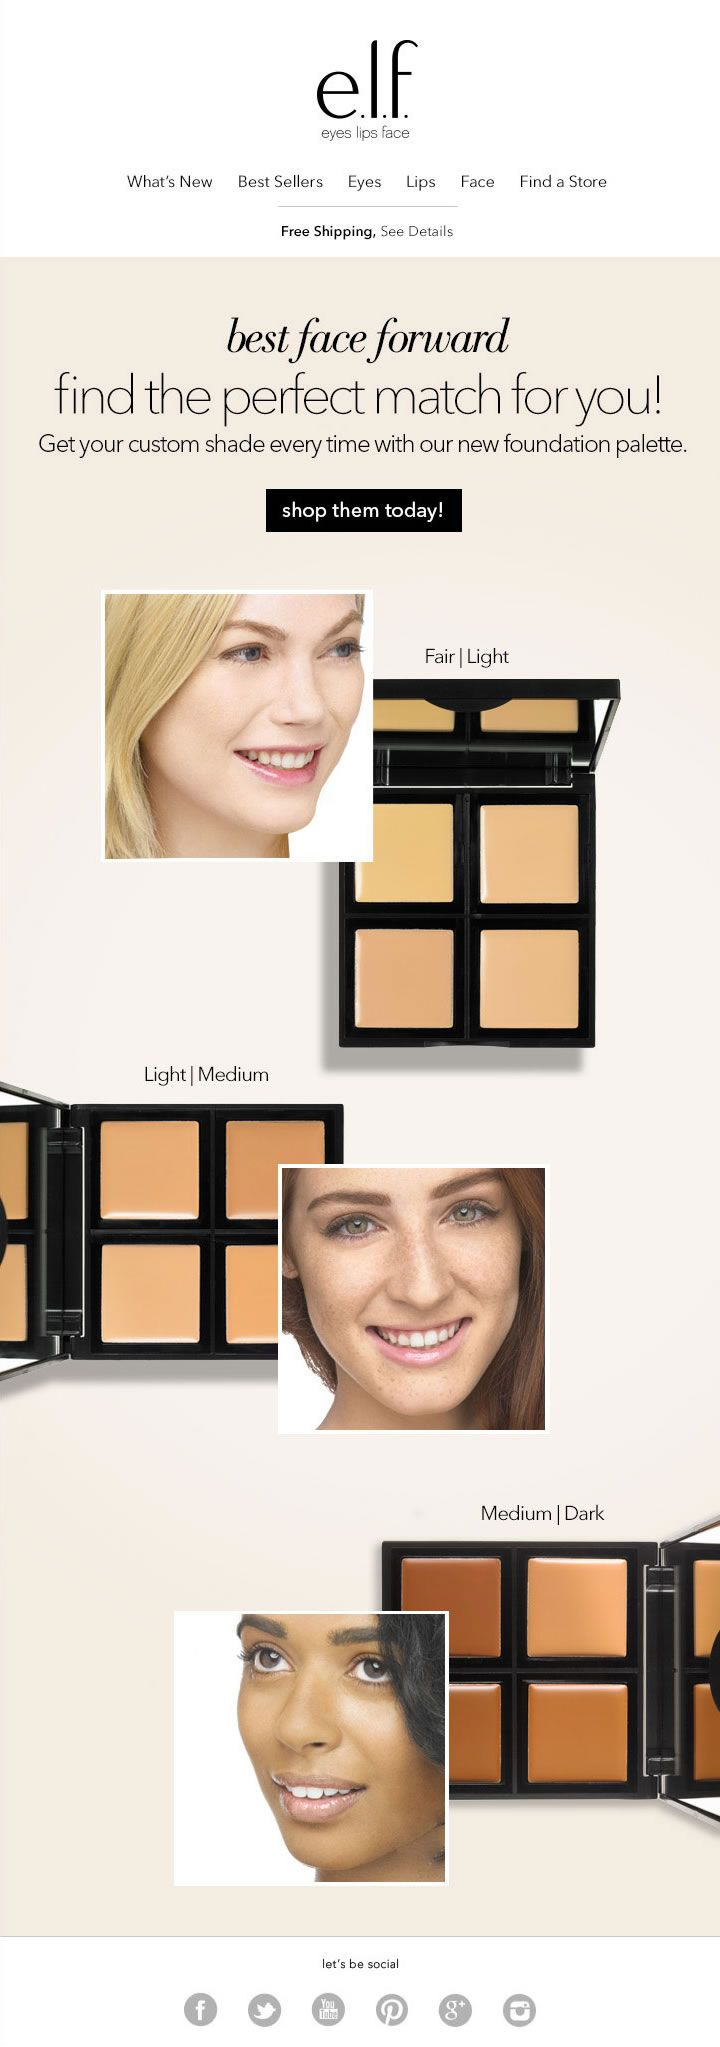 Get your custom shade every time with our NEW foundation